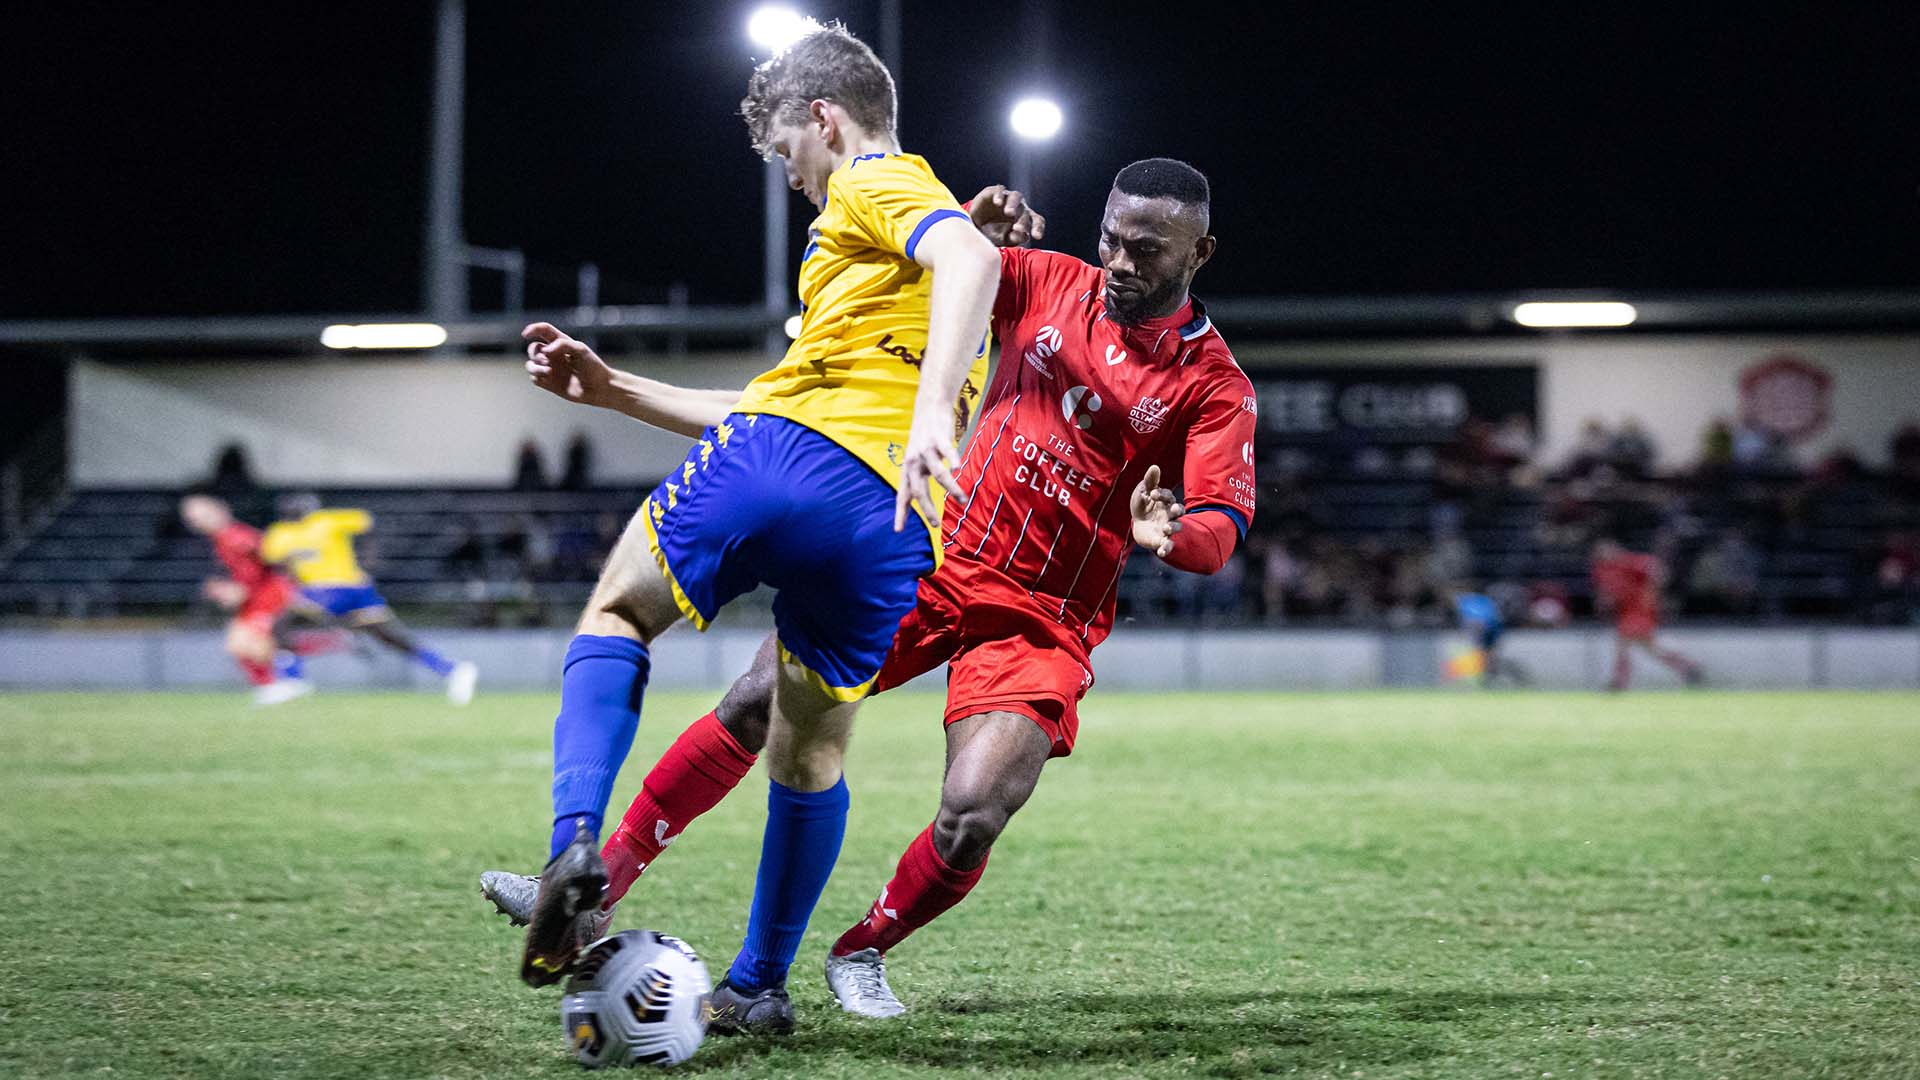 Match Preview: Capalaba vs Olympic FC